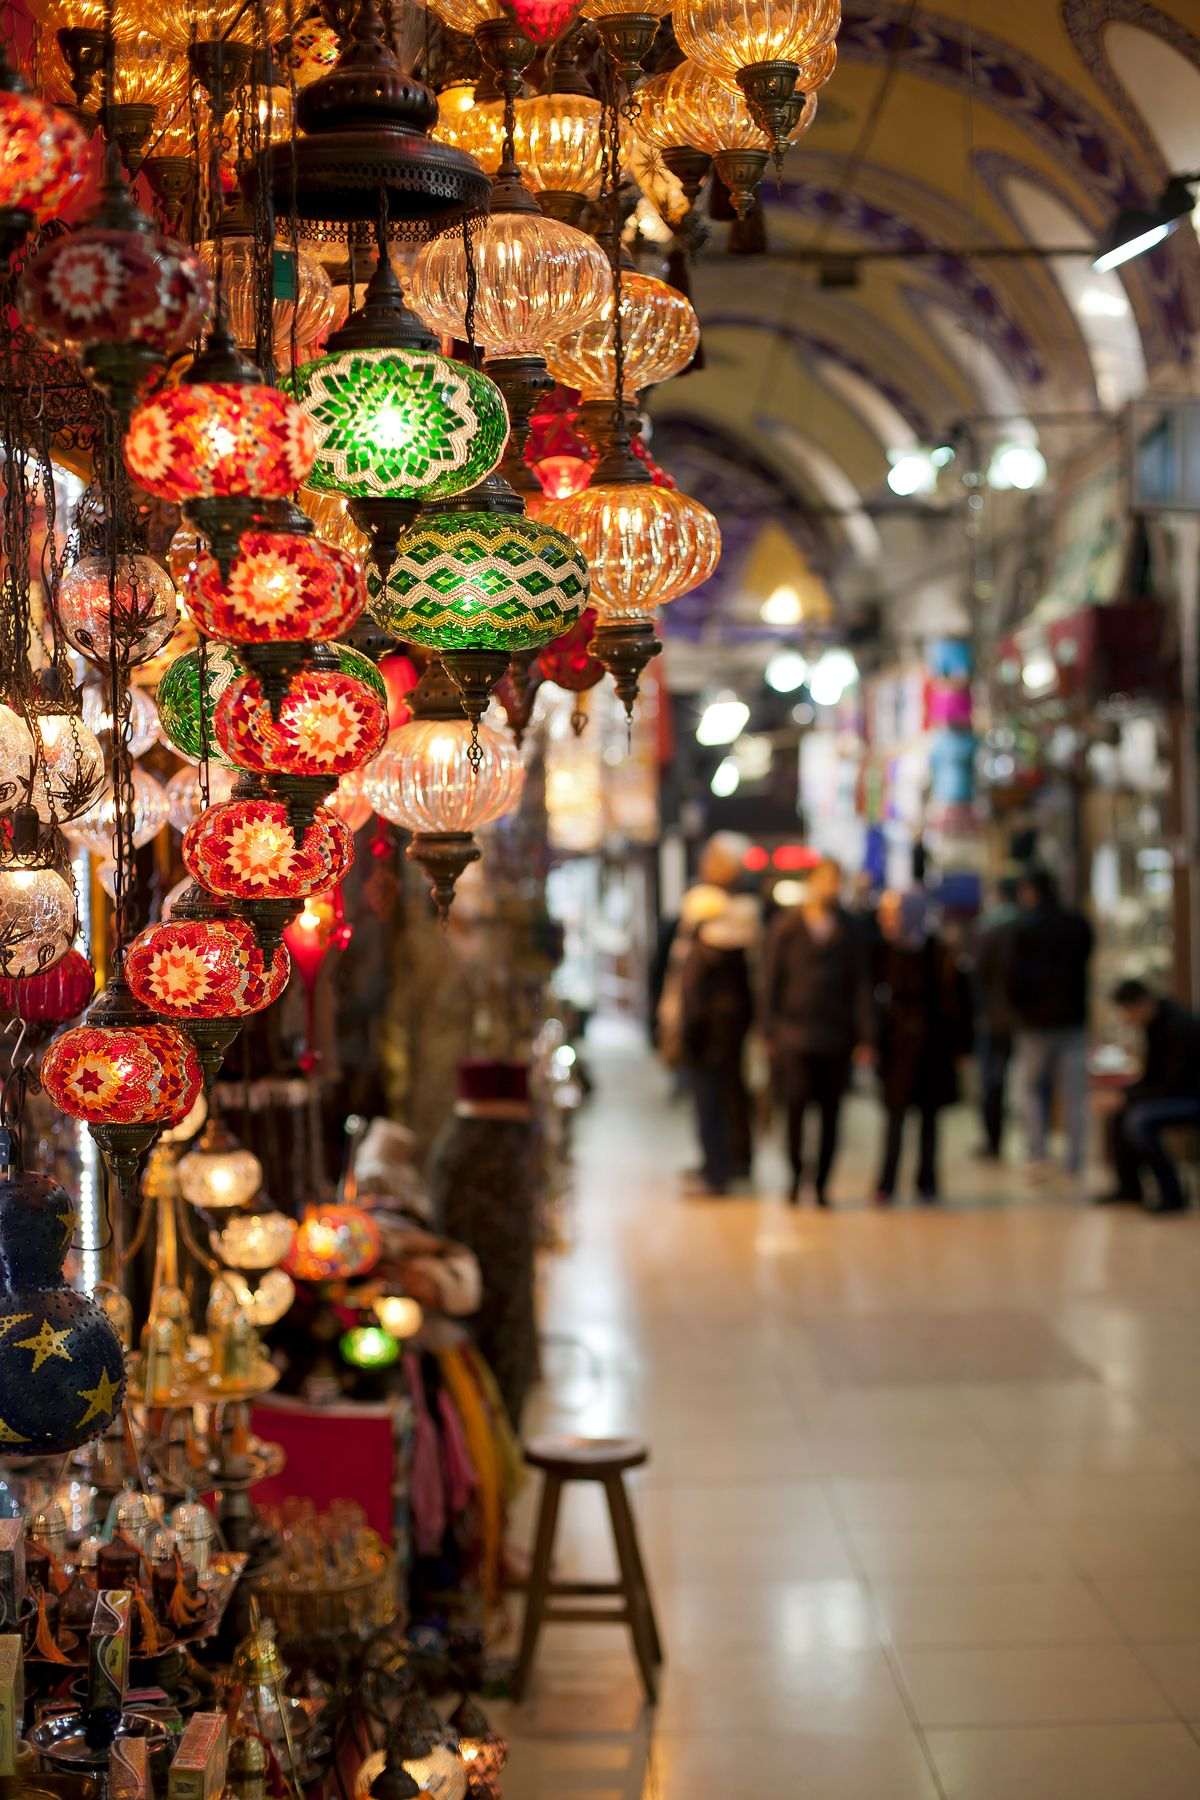 Lamps at the Grand Bazaar in Istanbul, Turkey